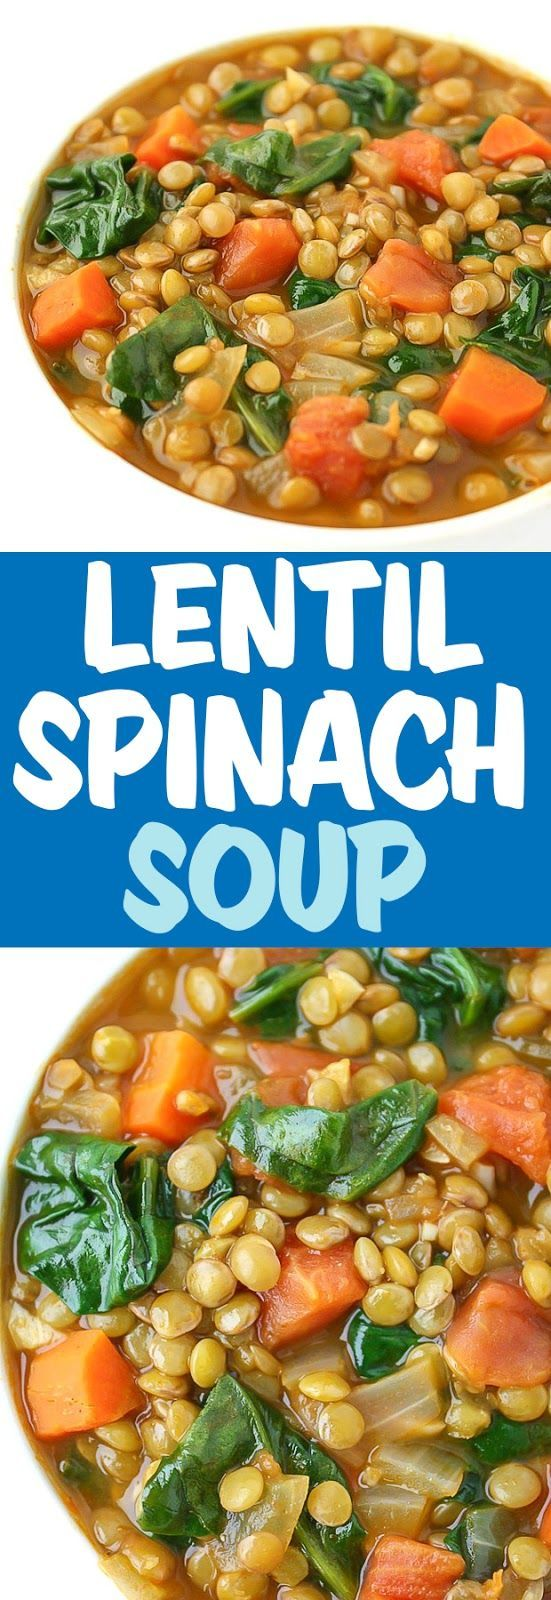 Linsenspinatsuppe -  #linsenspinatsuppe #spinachsoup